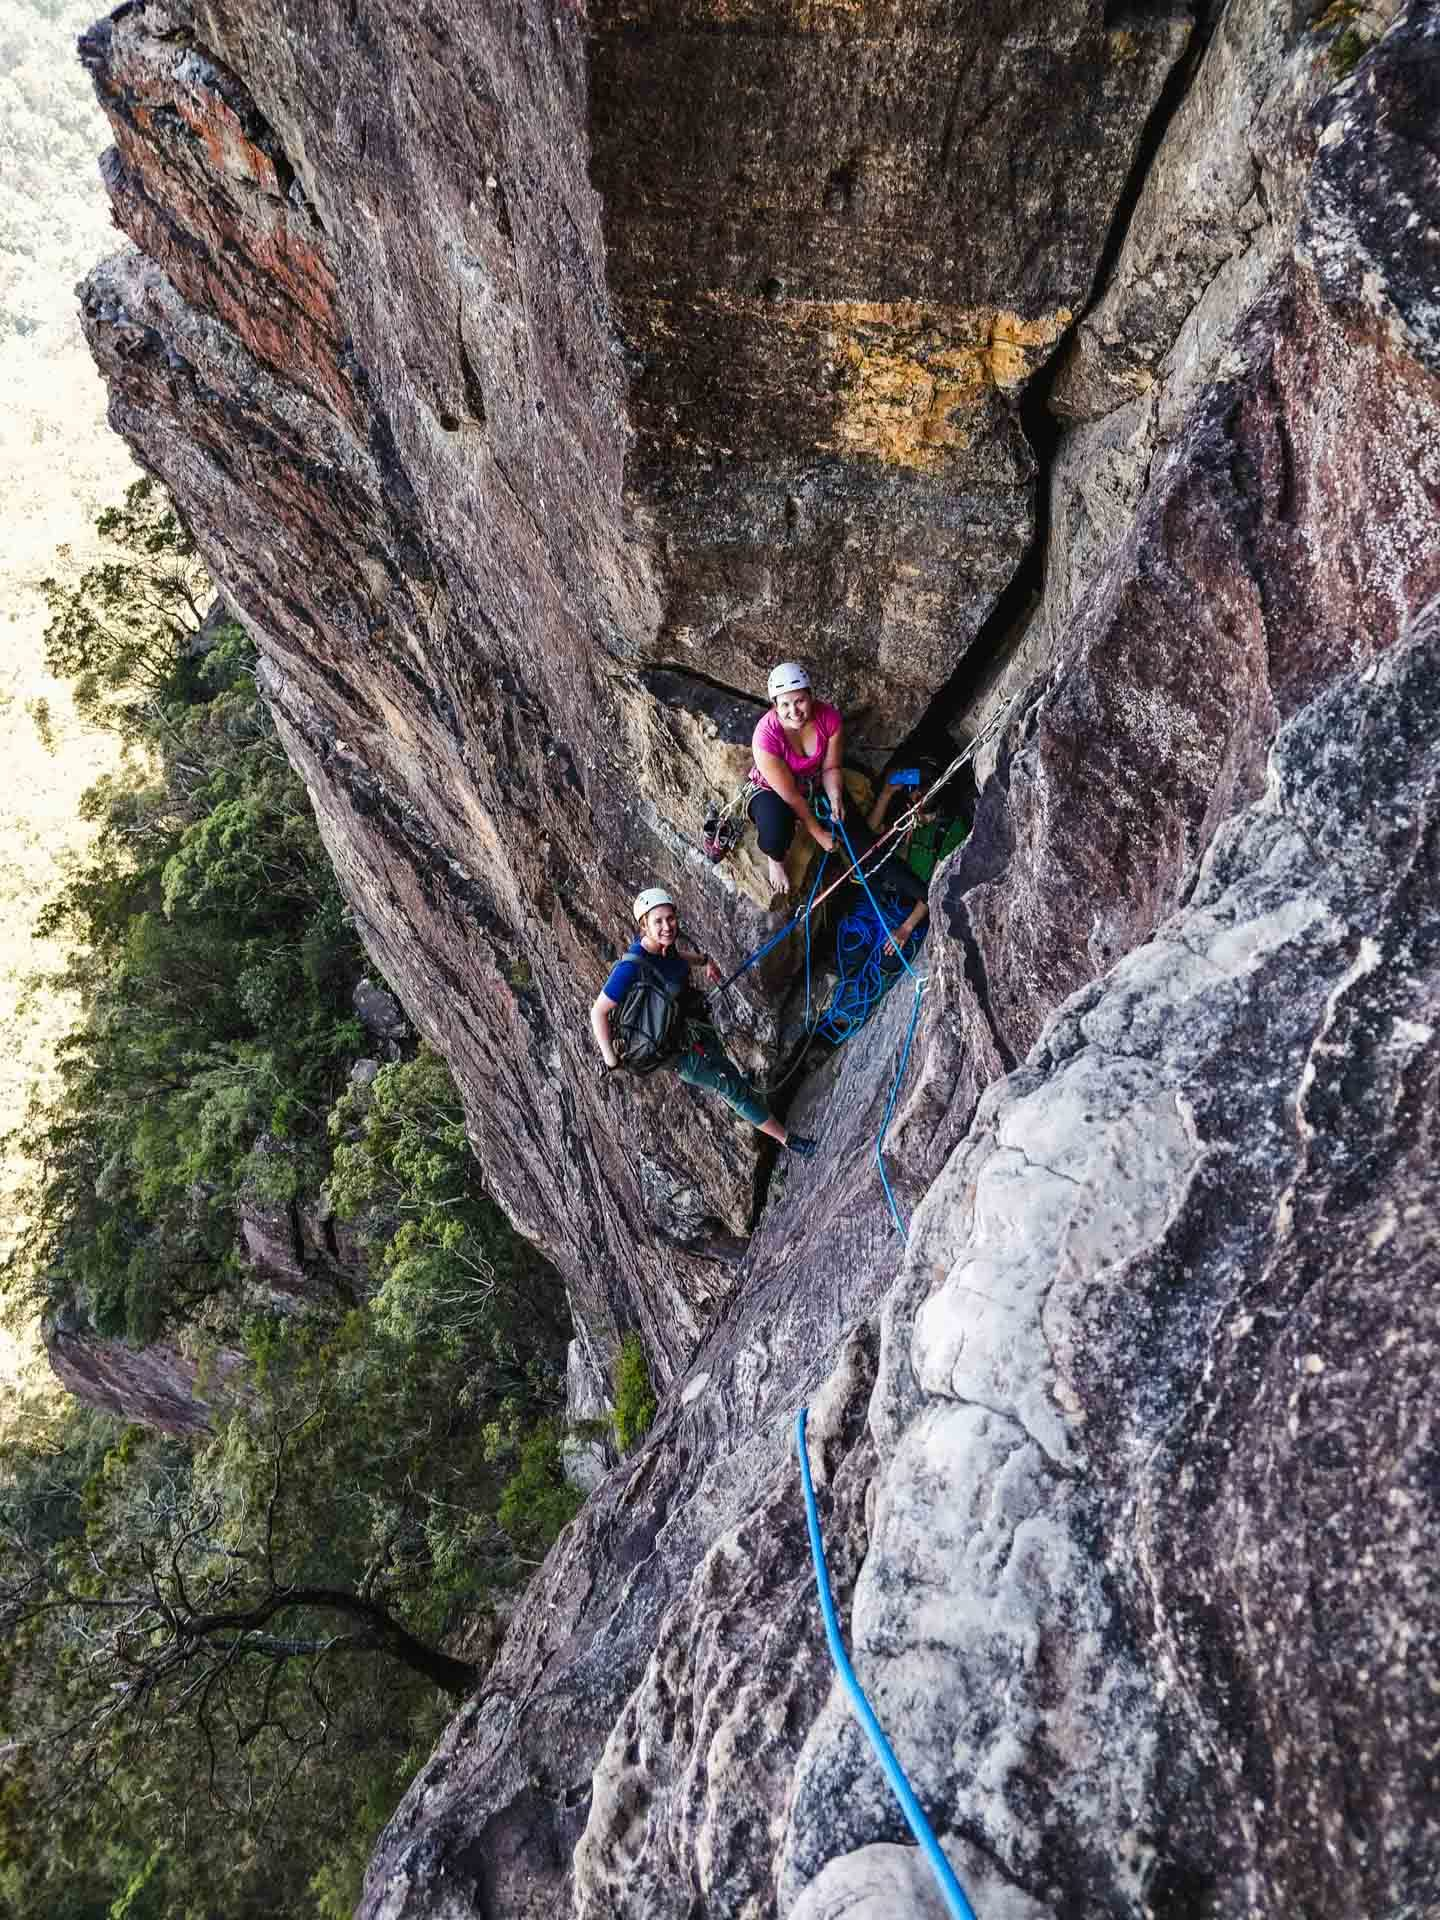 photo by Wendy Bruere, climbing Sweet Dreams, multi pitch, Sublime Point, Blue Mountains, NSW